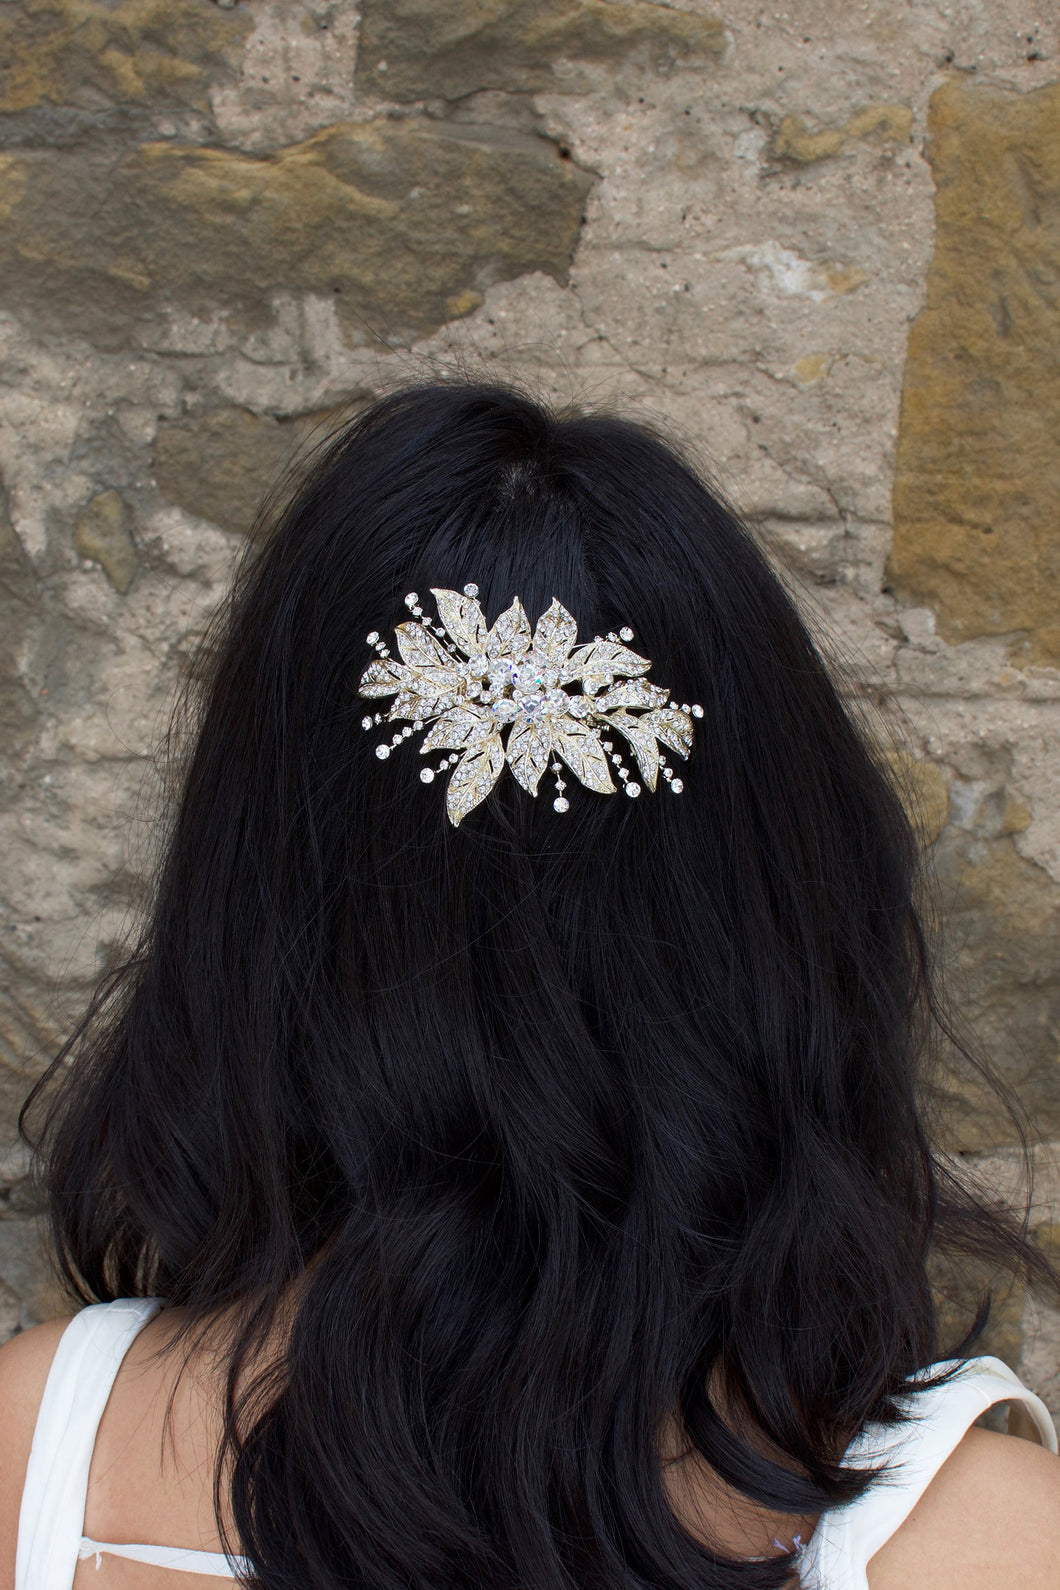 A back haired model wears a gold flower bridal side comb on the back of her head. A stone wall is the backdrop